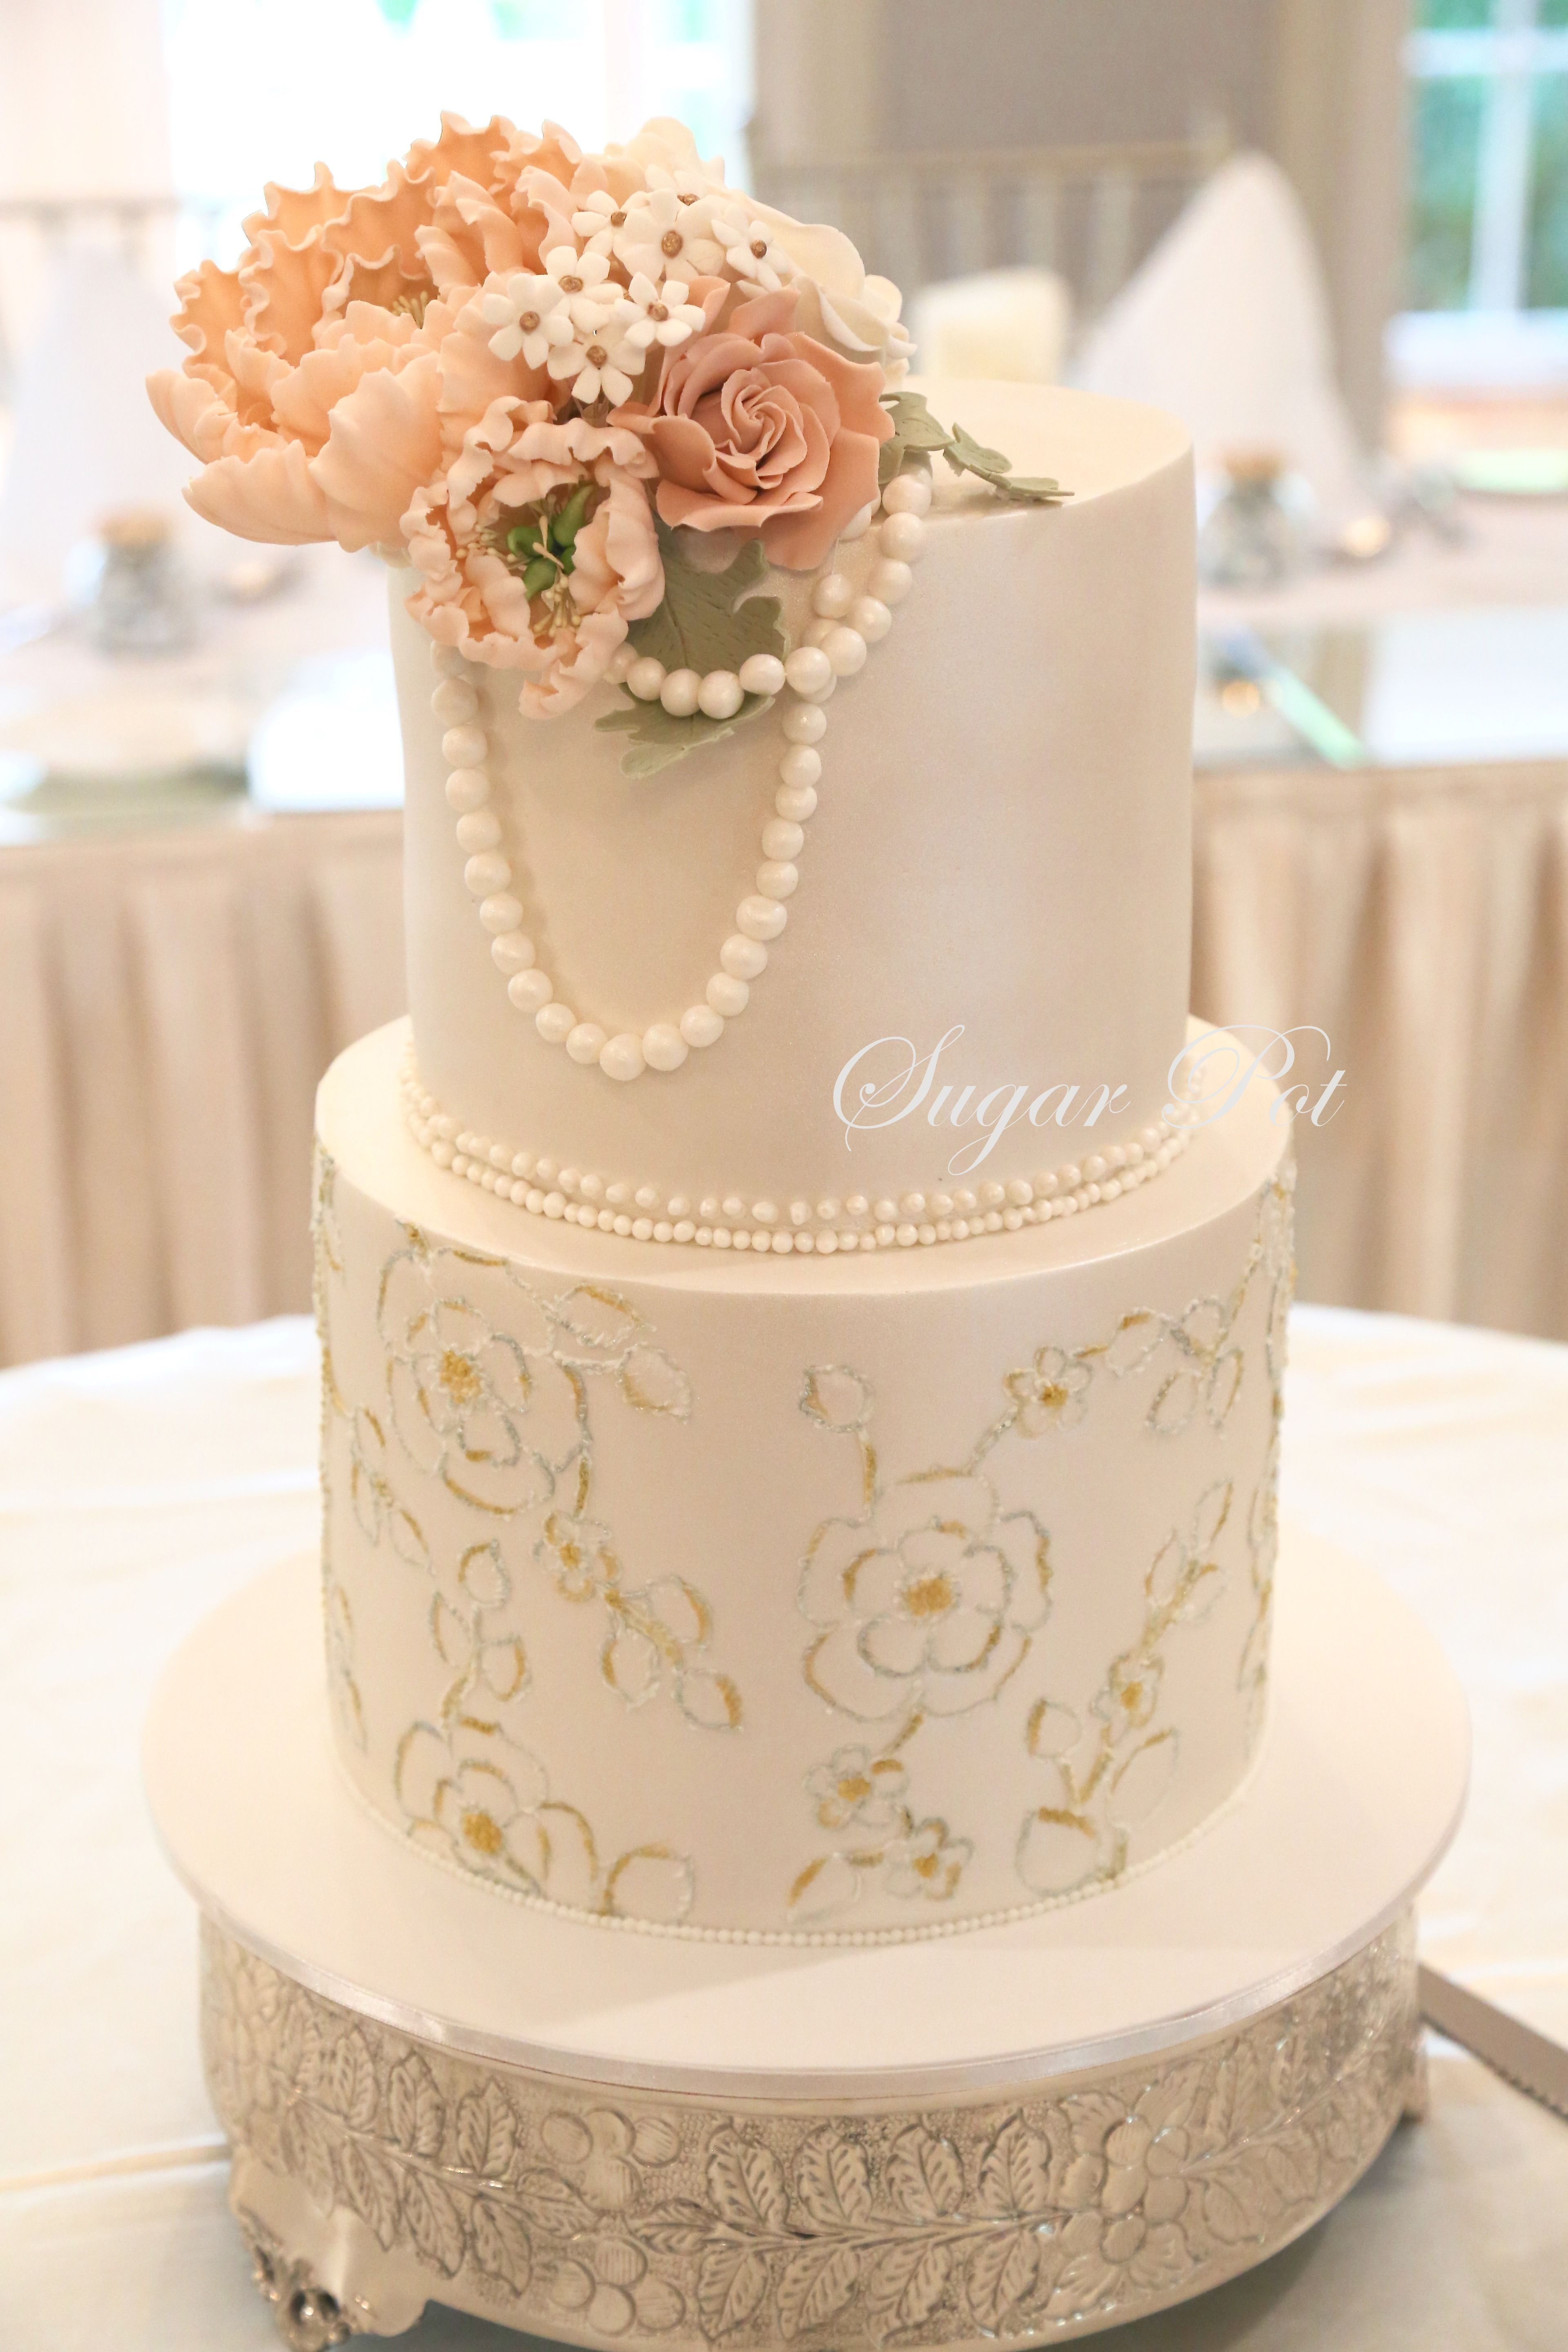 Two Tier Vintage Themed Wedding Cake I Love Cake Pinterest